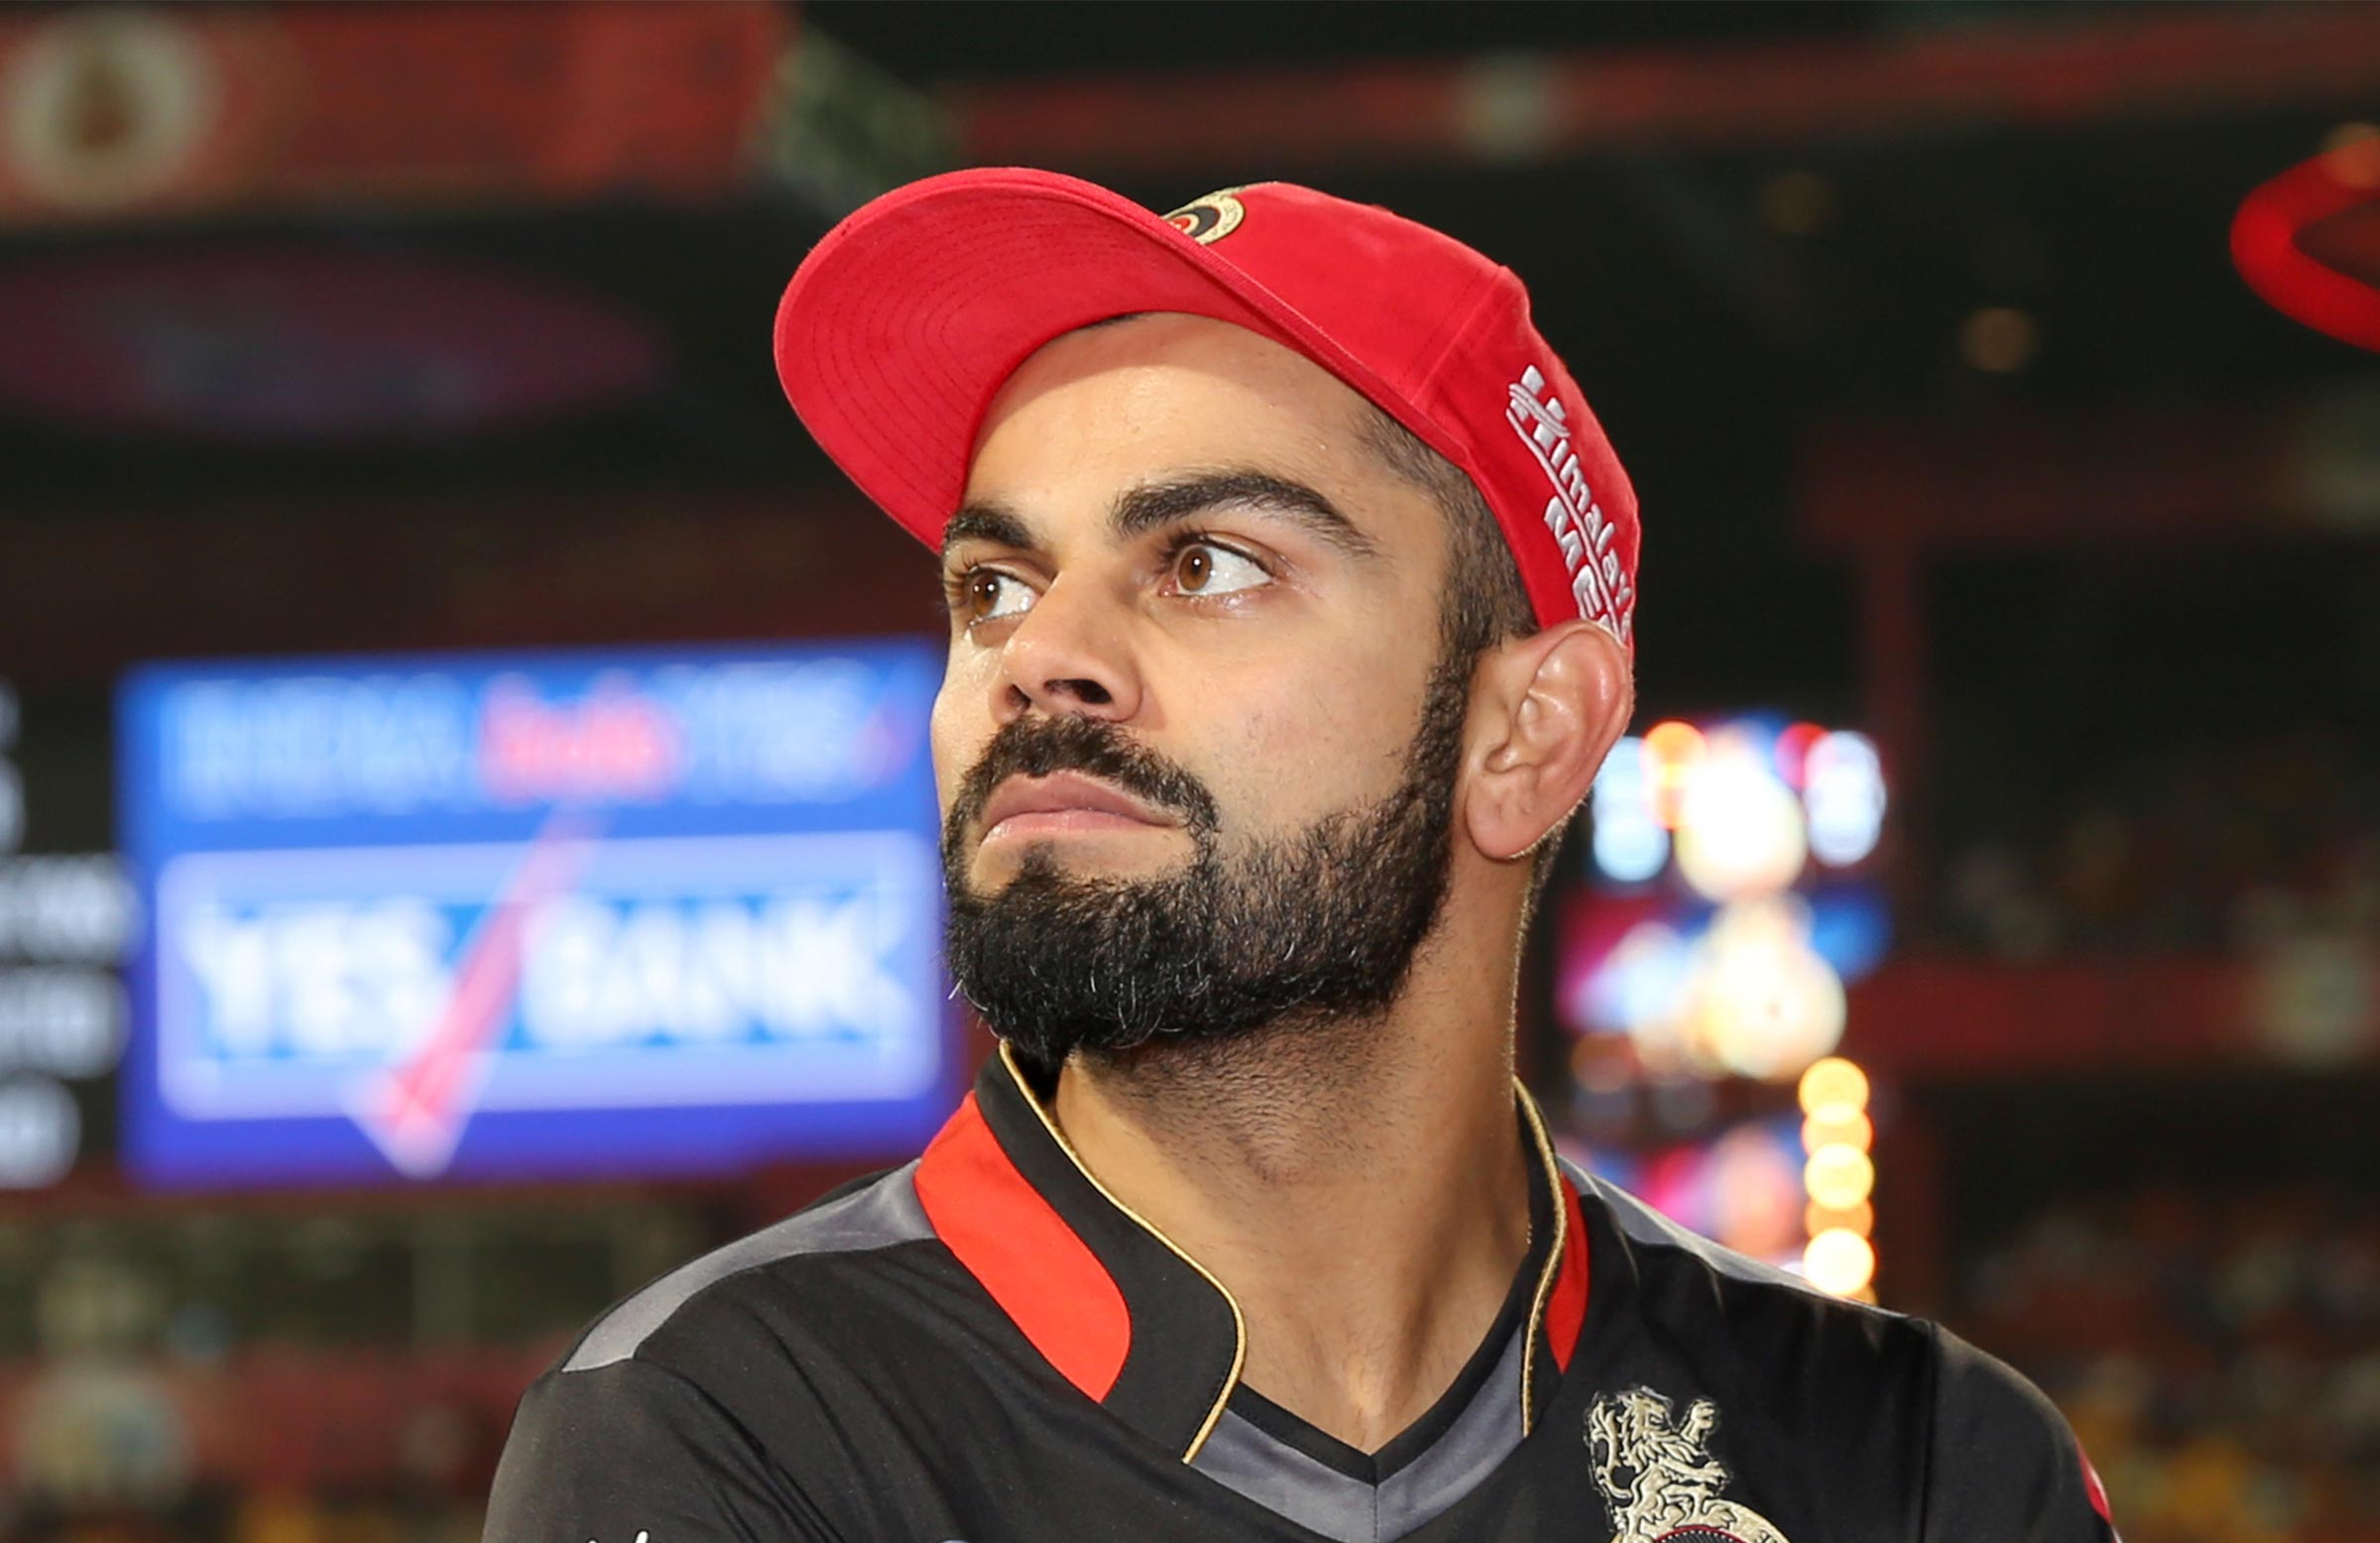 Kohli is under pressure as RCB skipper // BCCI